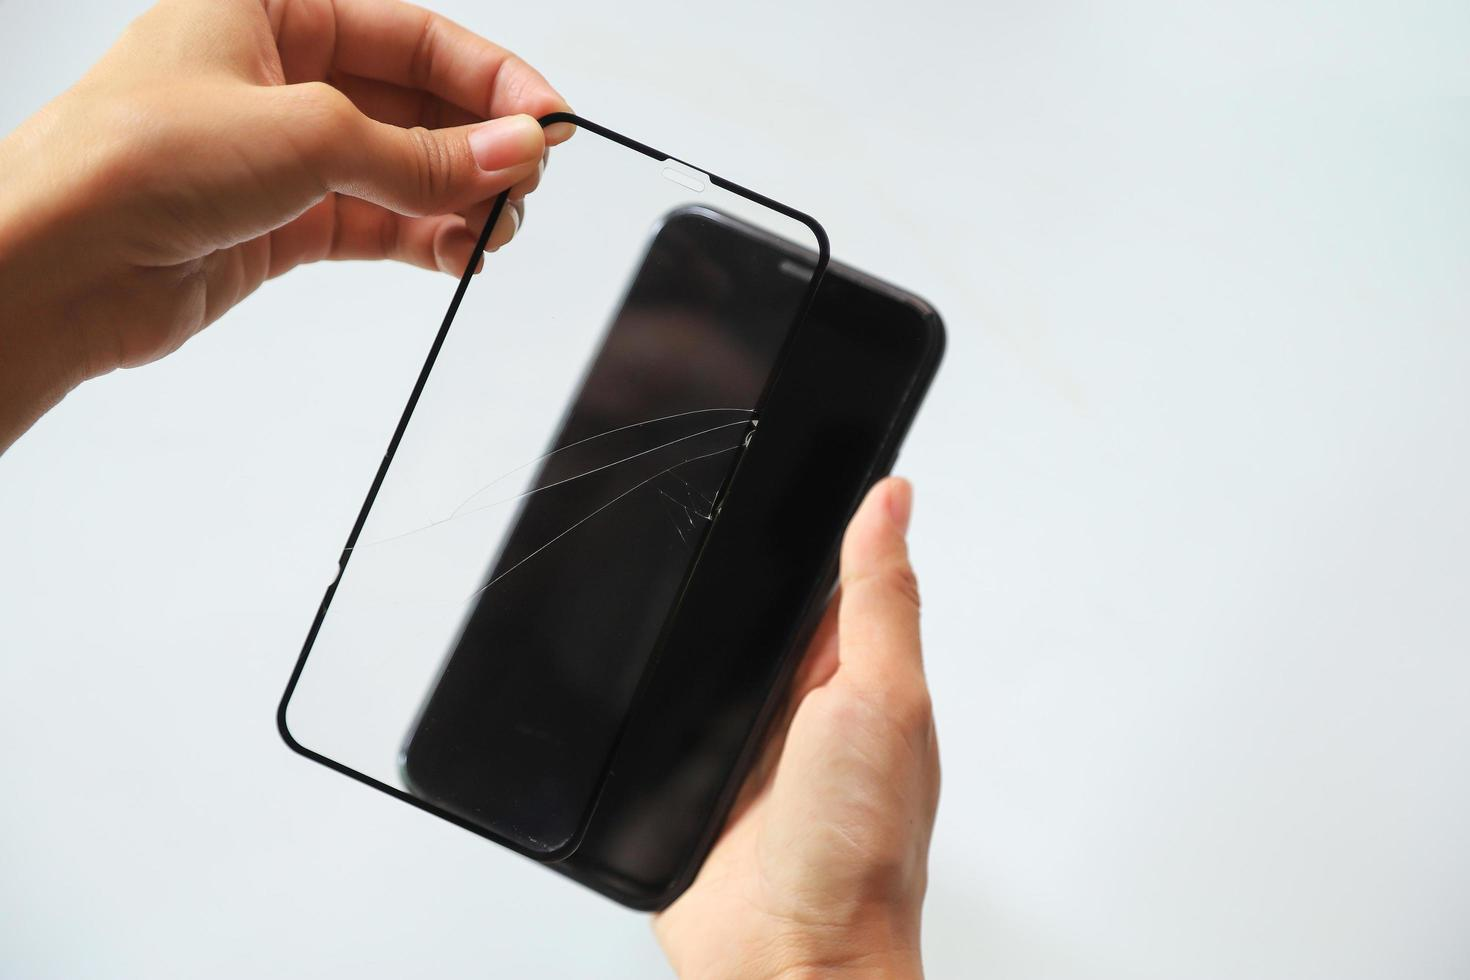 Close-up of person fixing cracked smartphone cover photo